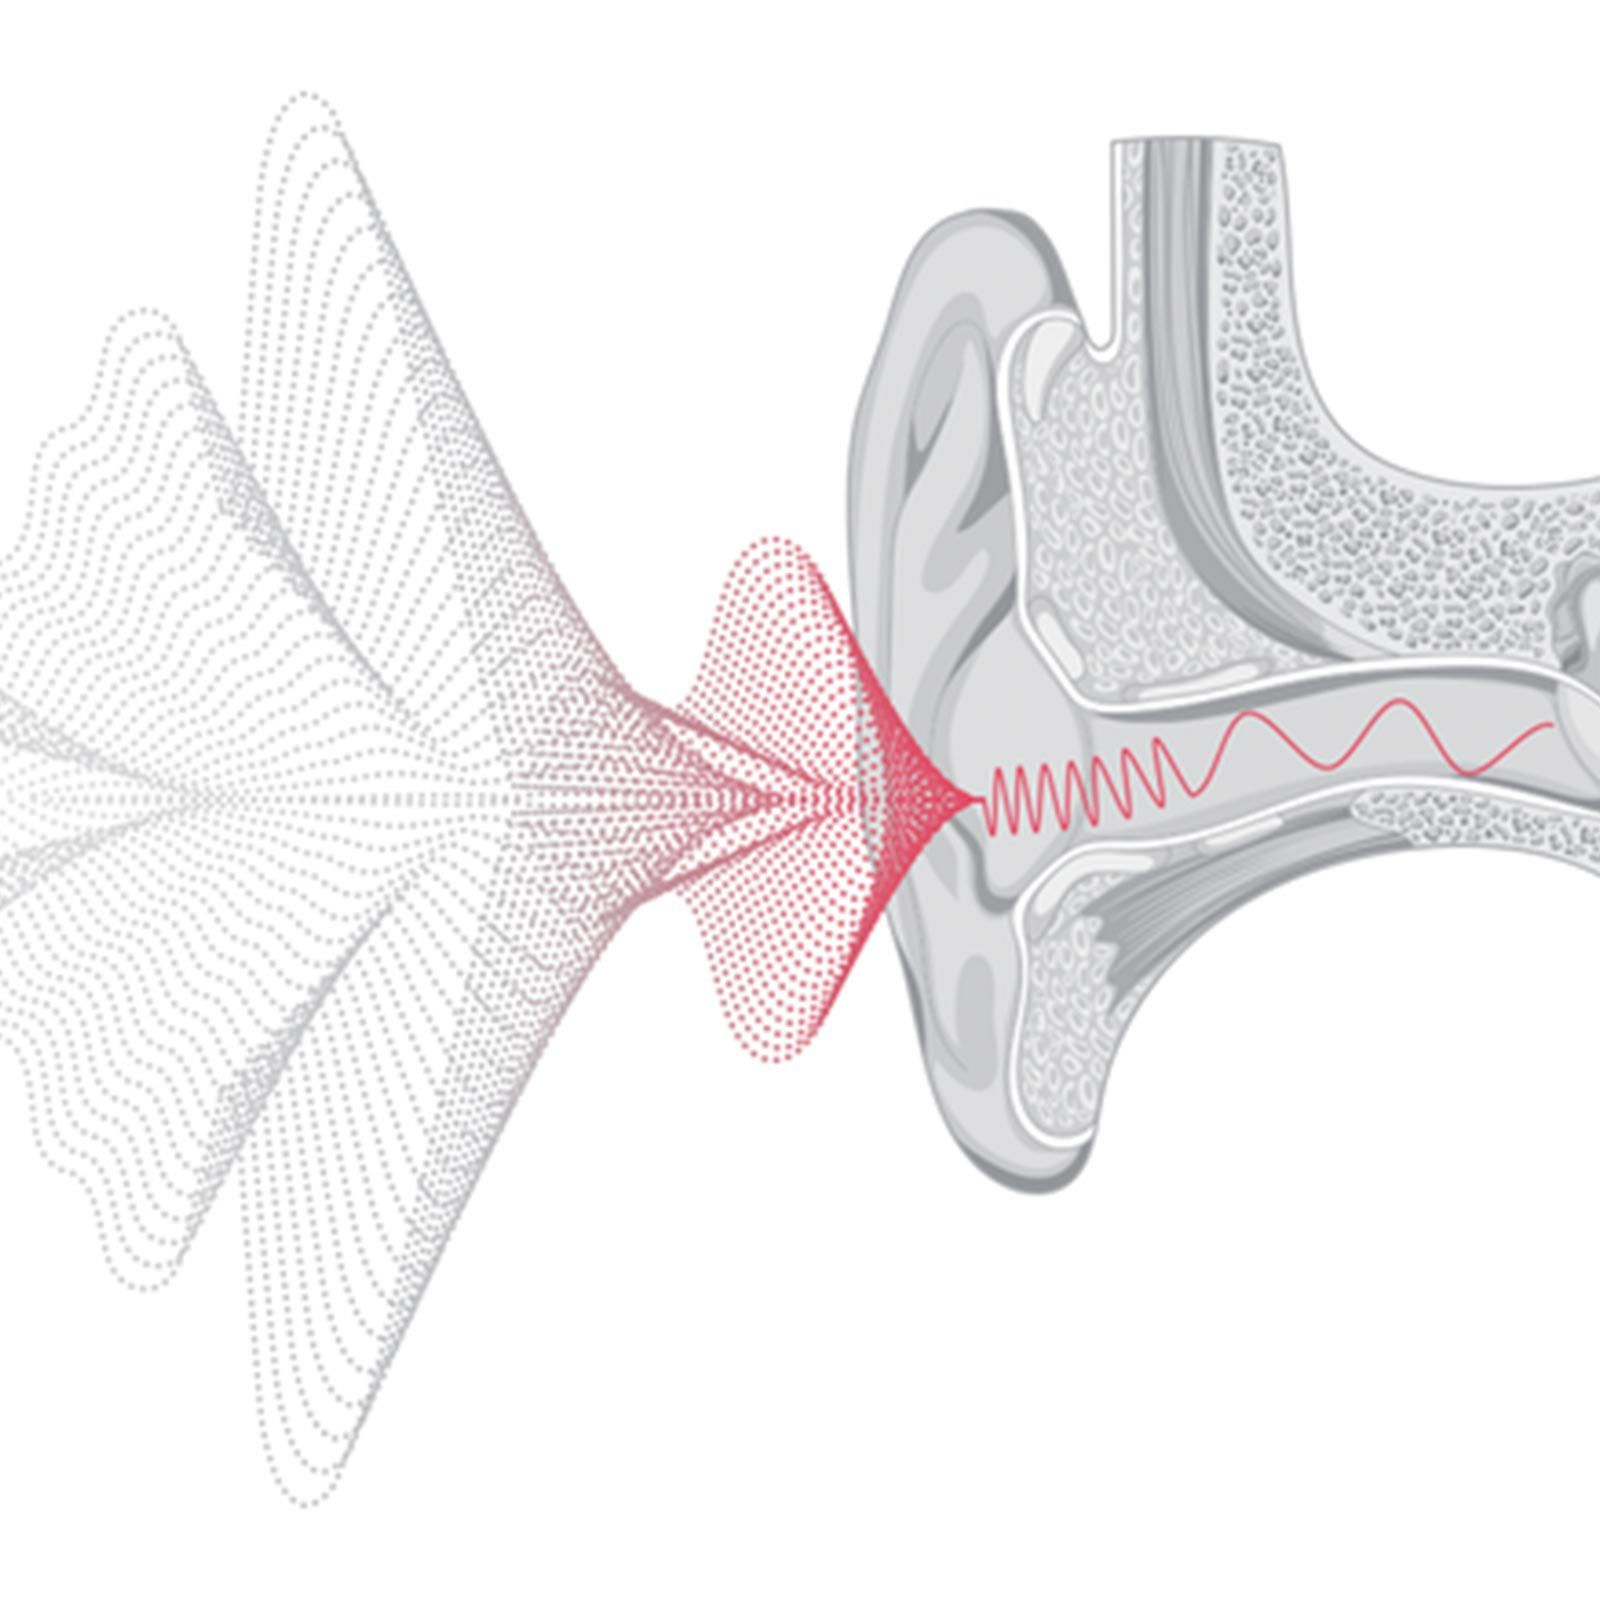 Illustrated cross-section of ear, demonstrating how Otoacoustic Emissions (OAEs) work